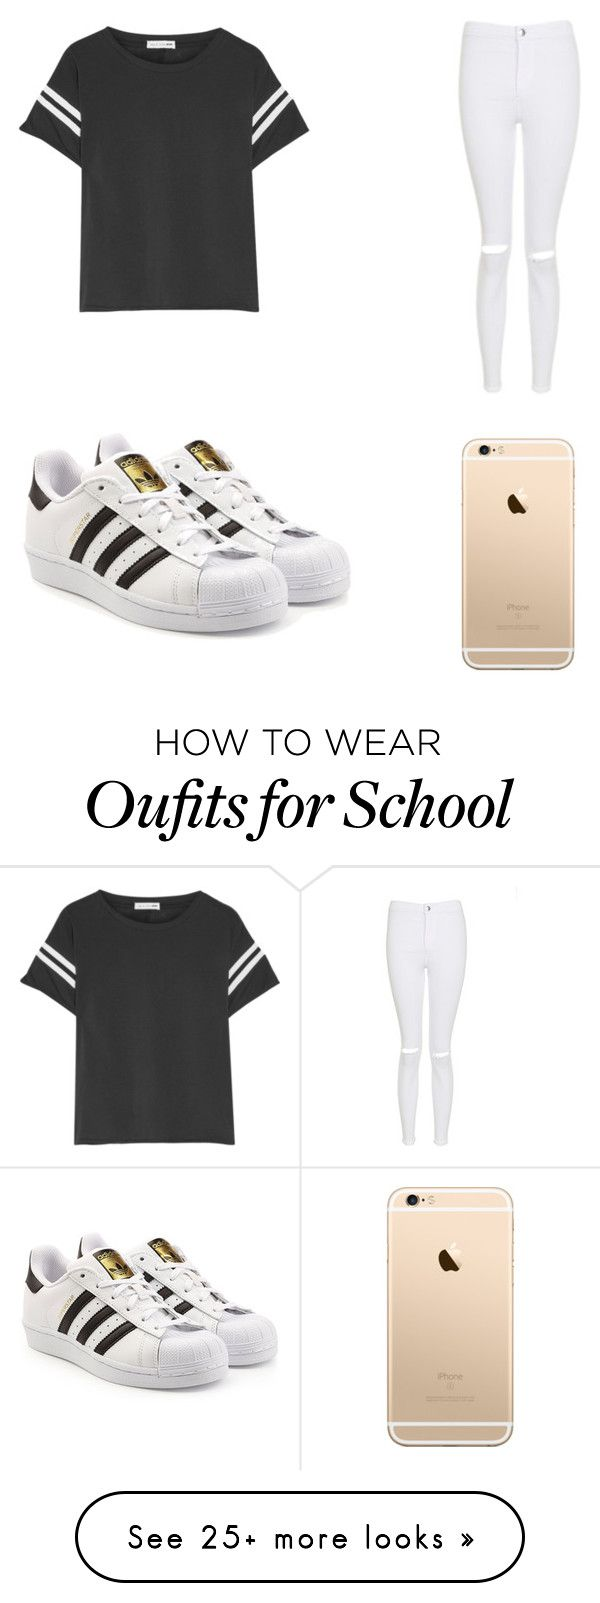 """School"" by andreeadeea460 on Polyvore featuring rag & bone, Topshop and adidas Originals"